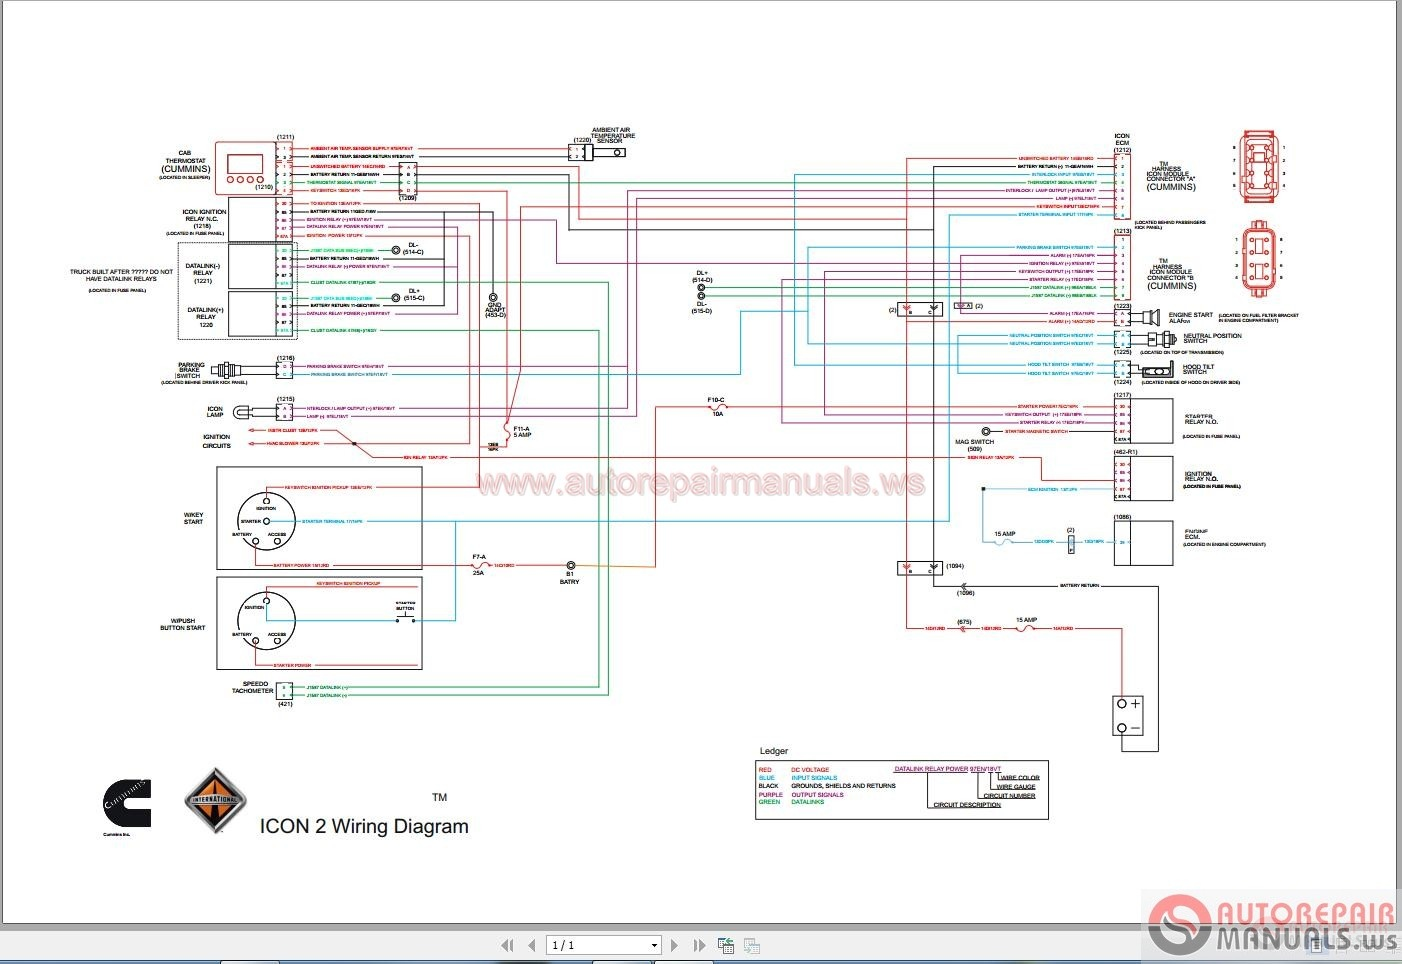 WRG-7488] Wiring Diagram For A 2007 9200 International Truck on